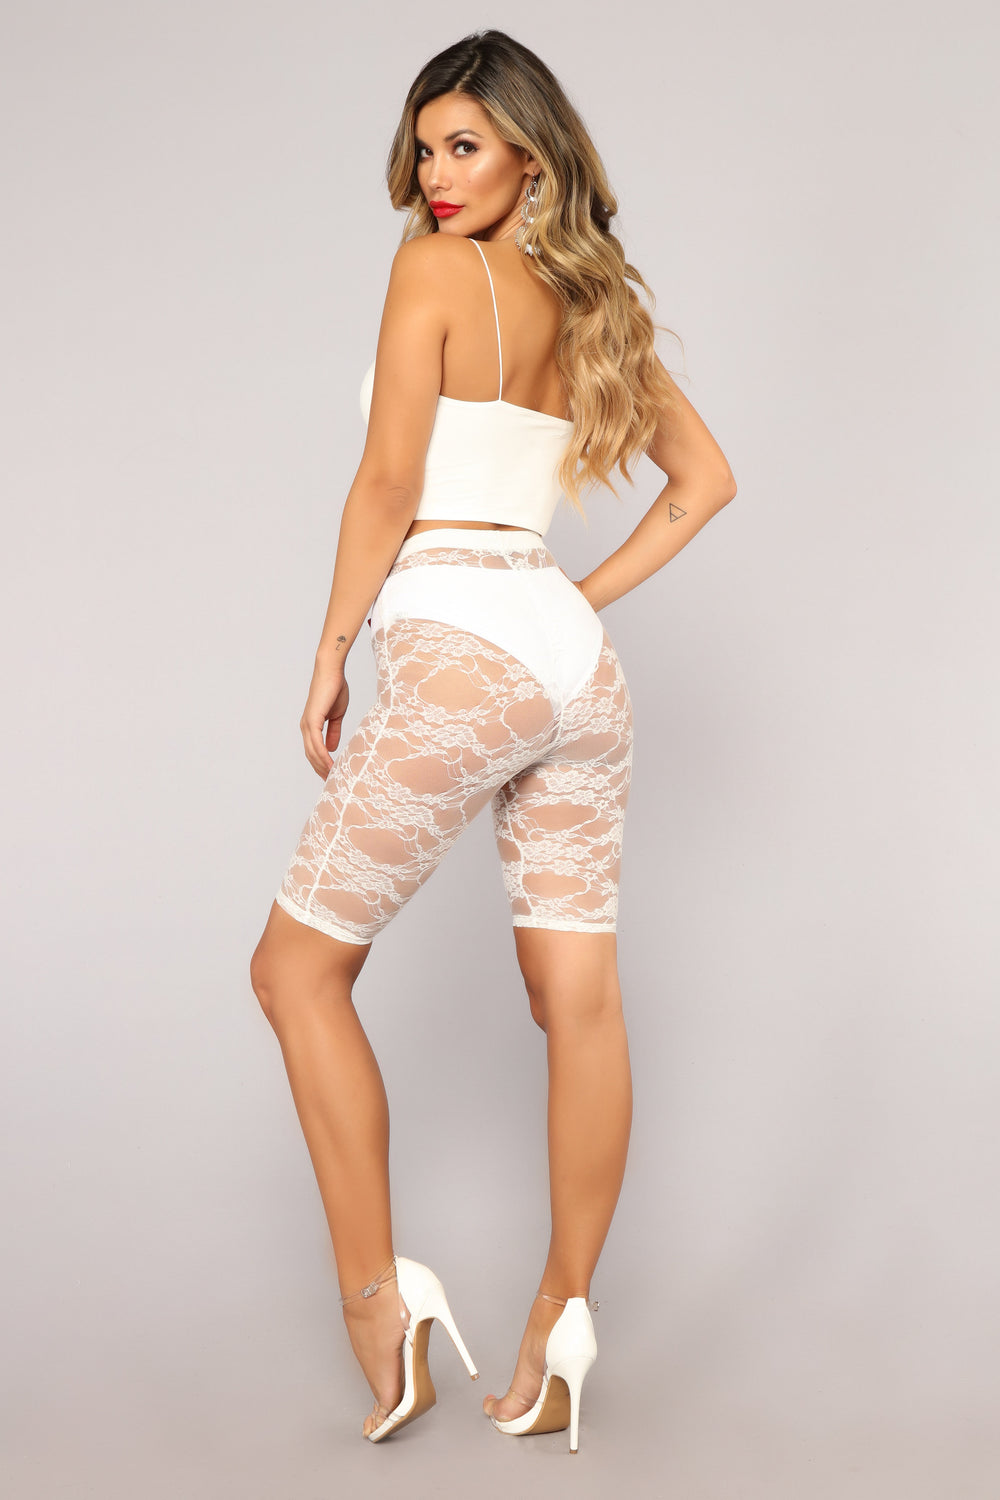 Aaliyah Lace Biker Shorts - White